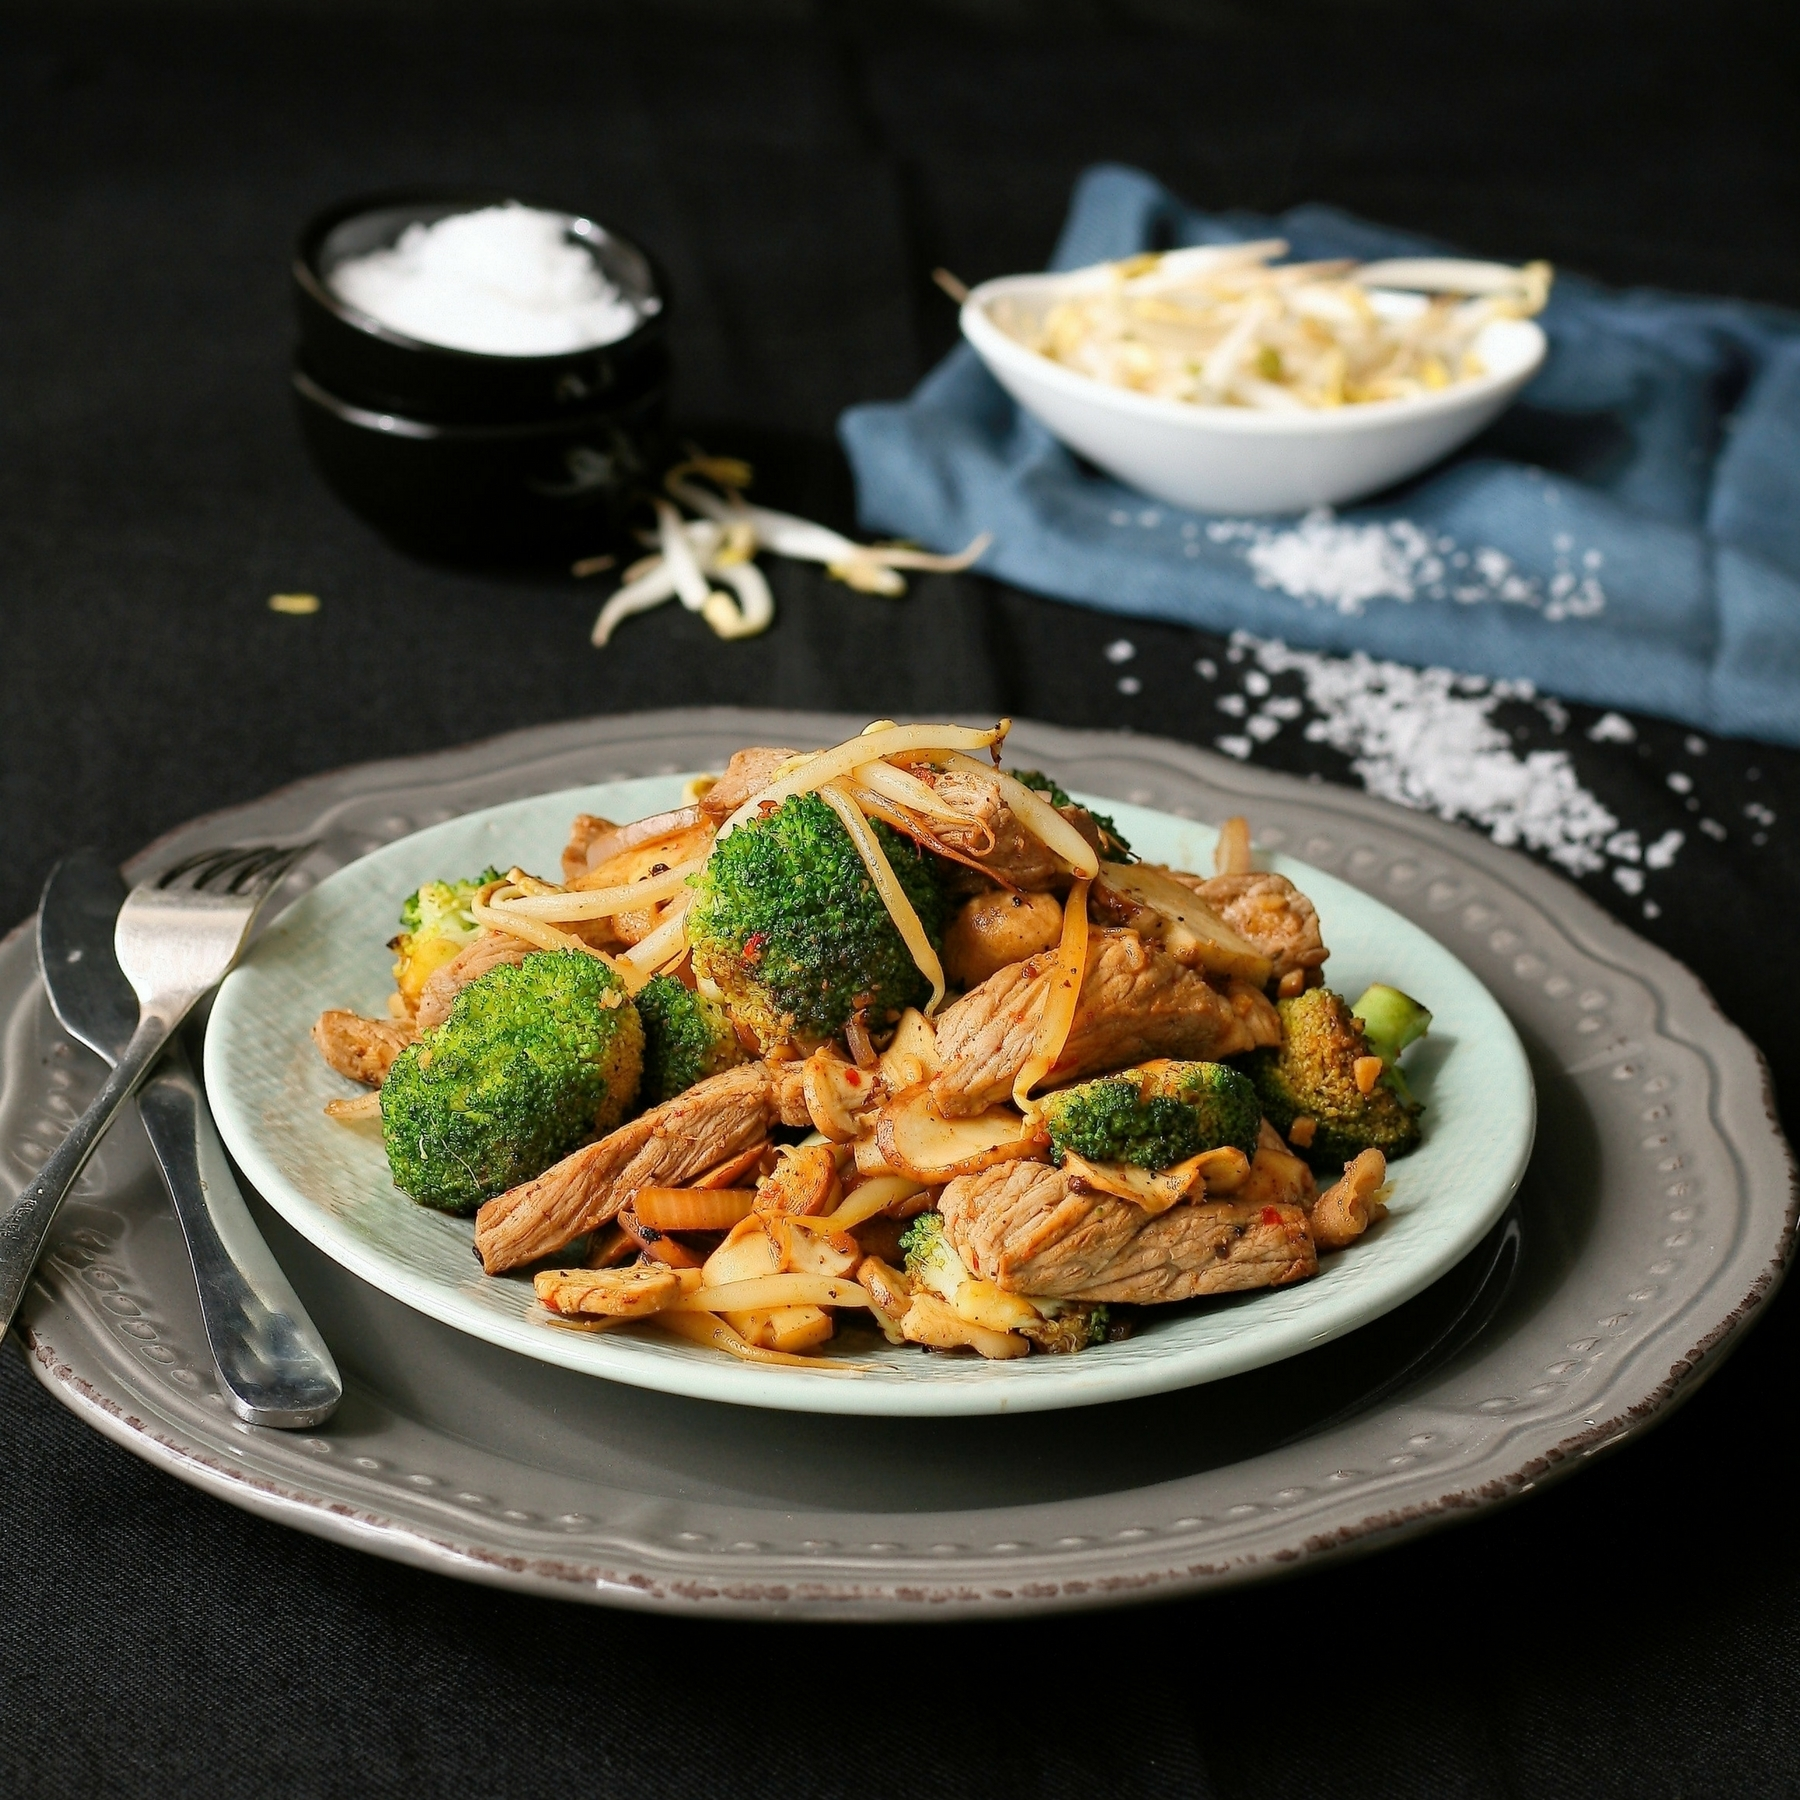 Low Carb Chilli Beef and Vegetable Stir Fry